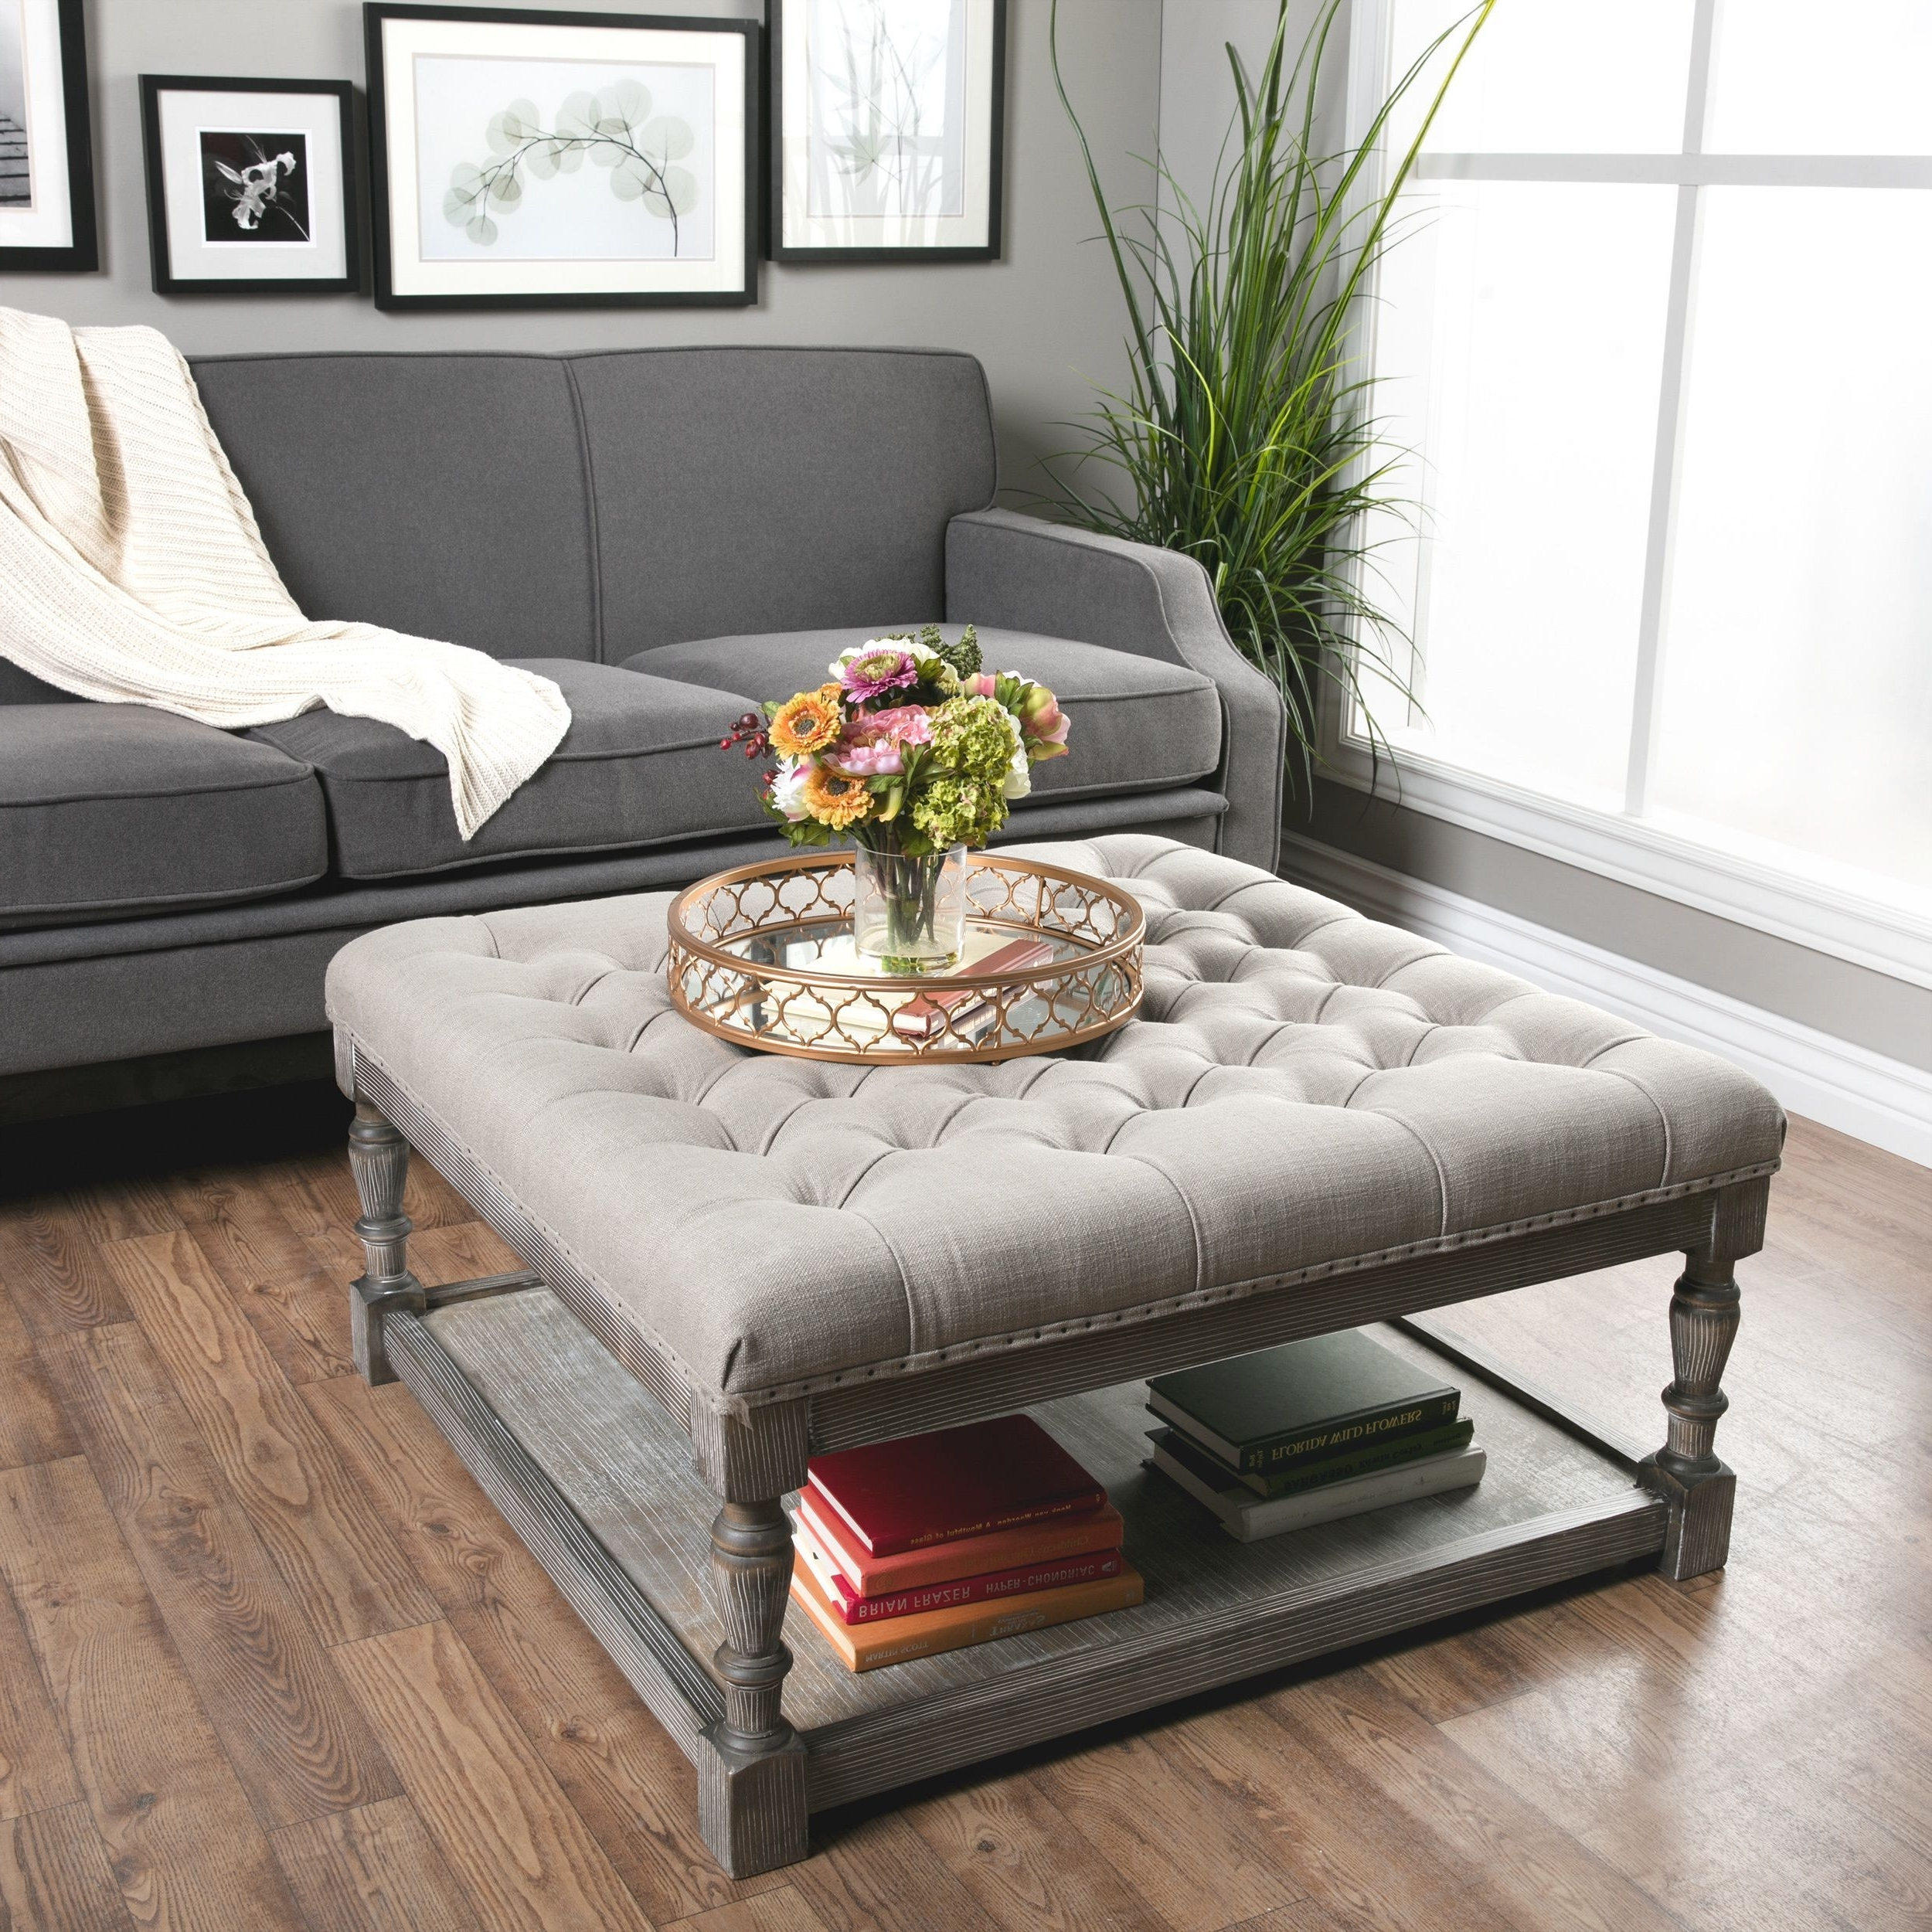 This Beautiful Creston Square Ottoman Features Comfortable, Durable Within Famous Button Tufted Coffee Tables (View 6 of 20)